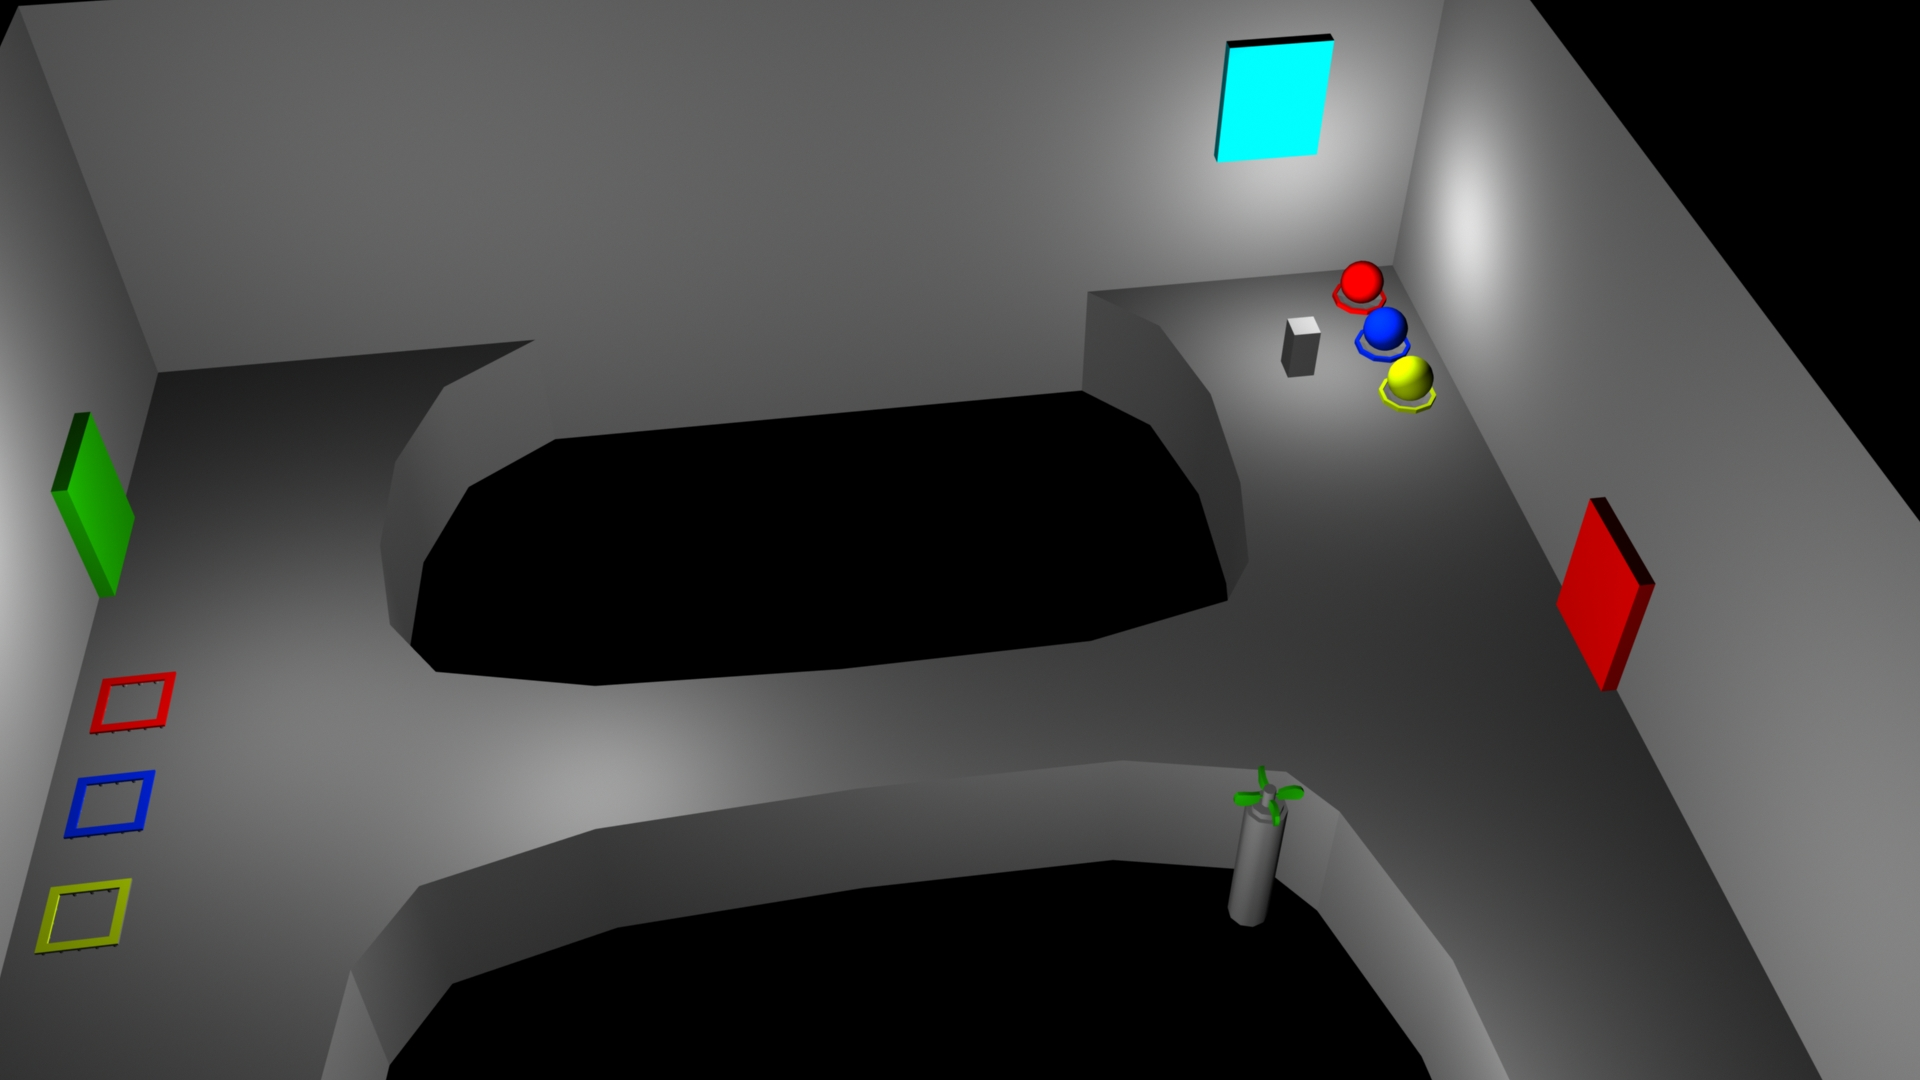 After bringing all 3 balls to their slots, the second door opens, allowing the player to take a different path out of the room. Normally, the red door would be opened by defeating all the enemies in the room with your elementals.